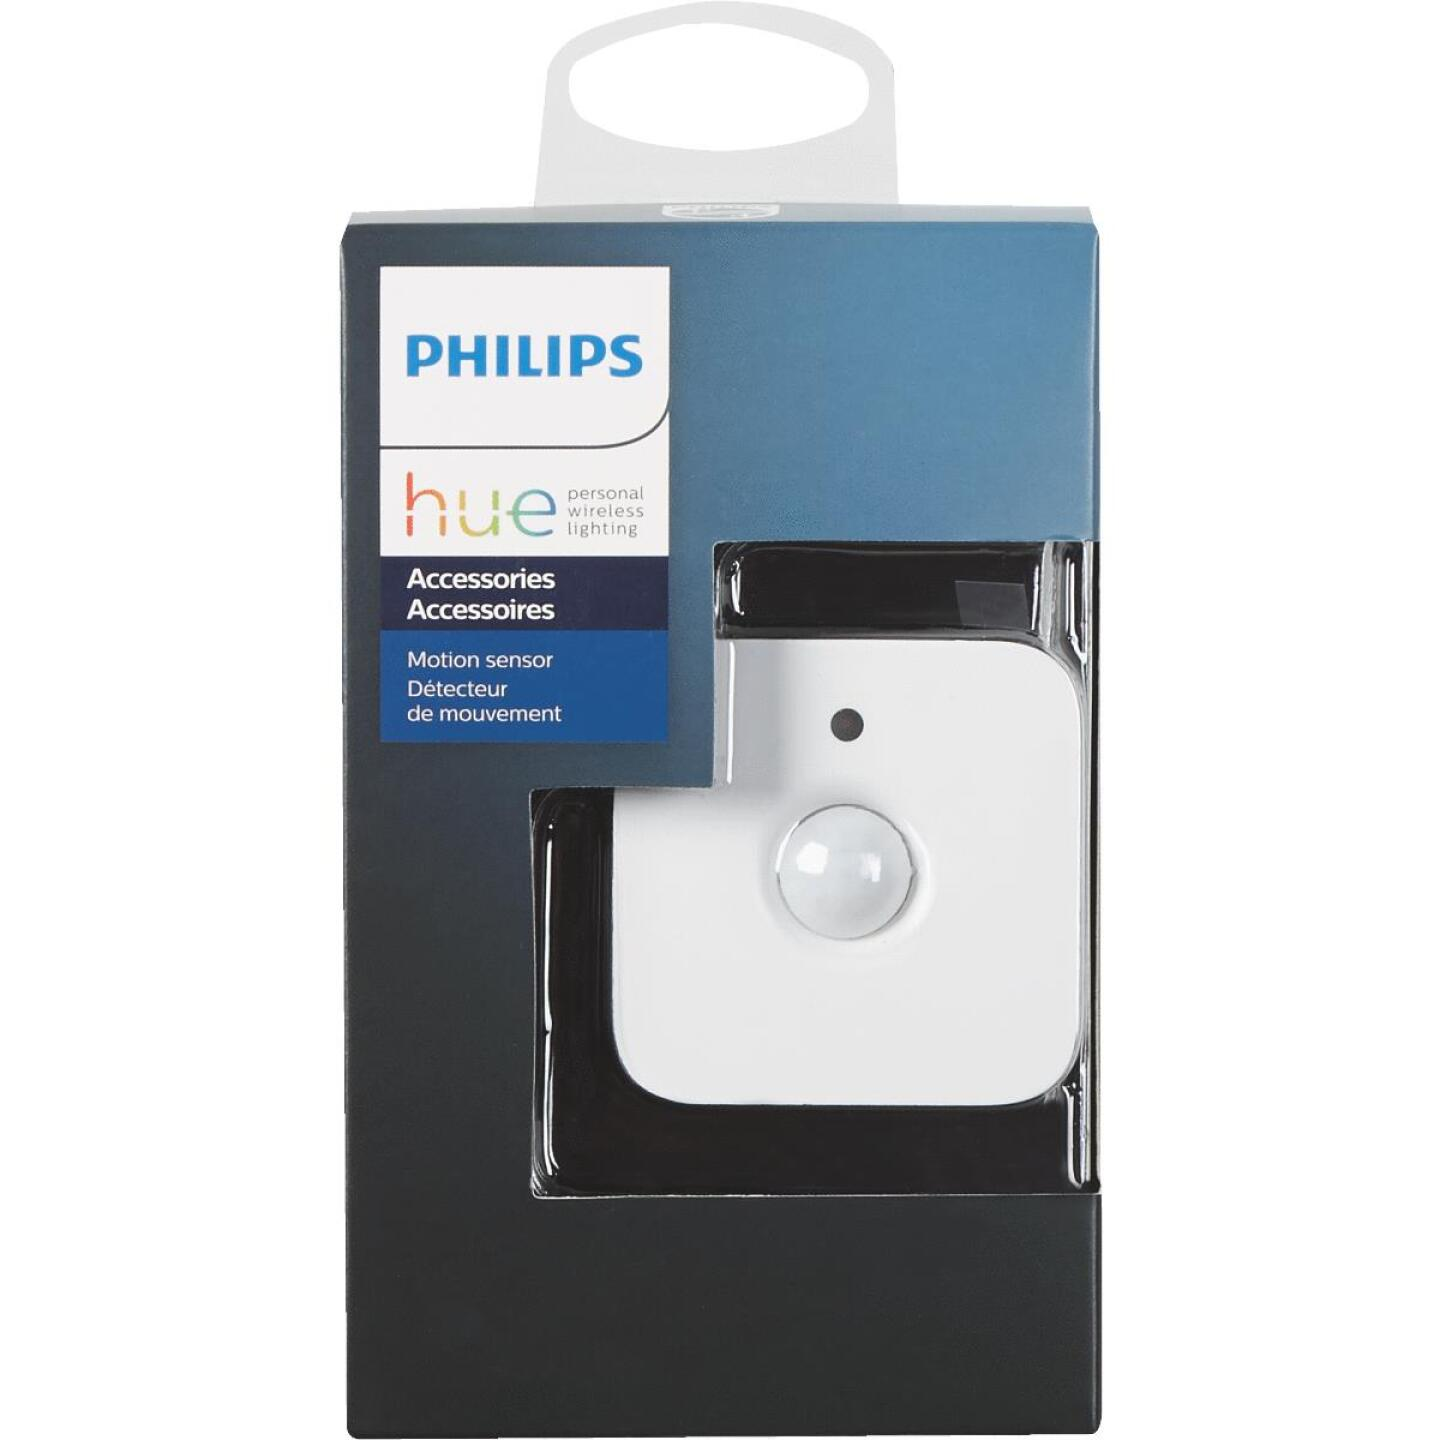 Philips Hue 100 Deg. Detection 16.4 Ft. Range Motion Sensor Image 2